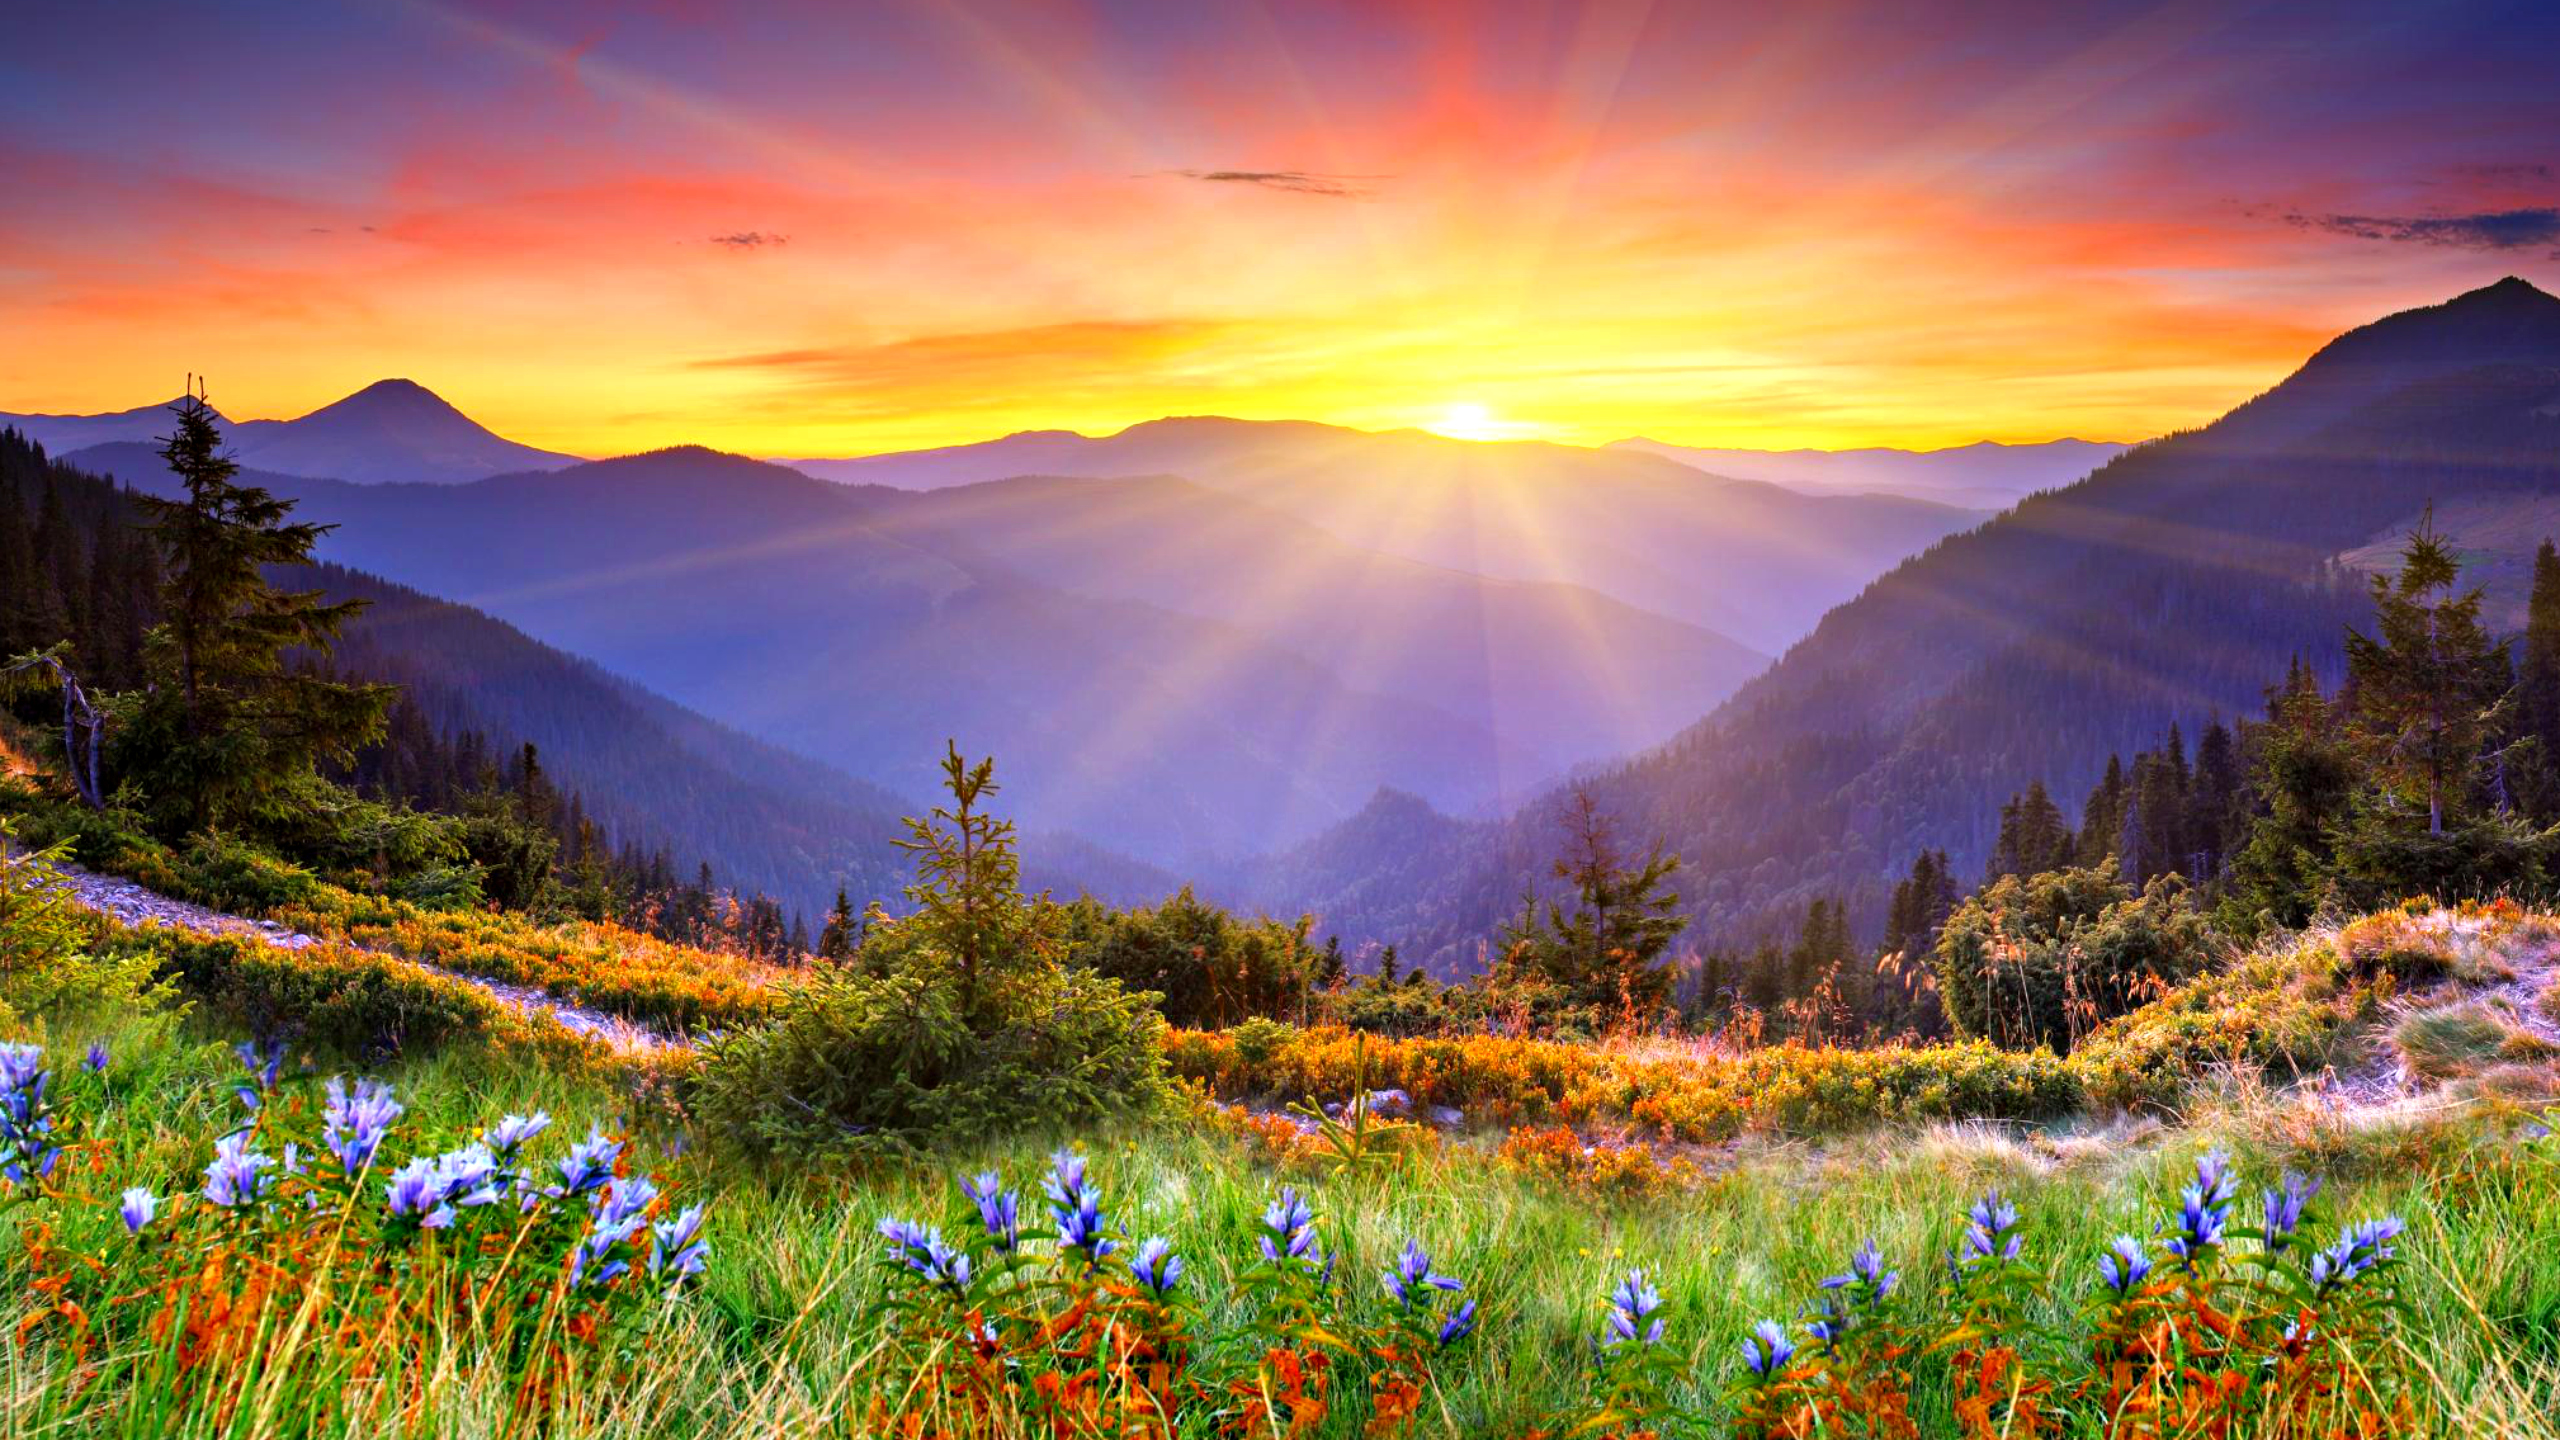 Beautiful Sunrise Wallpaper 34171 2560x1440 Px